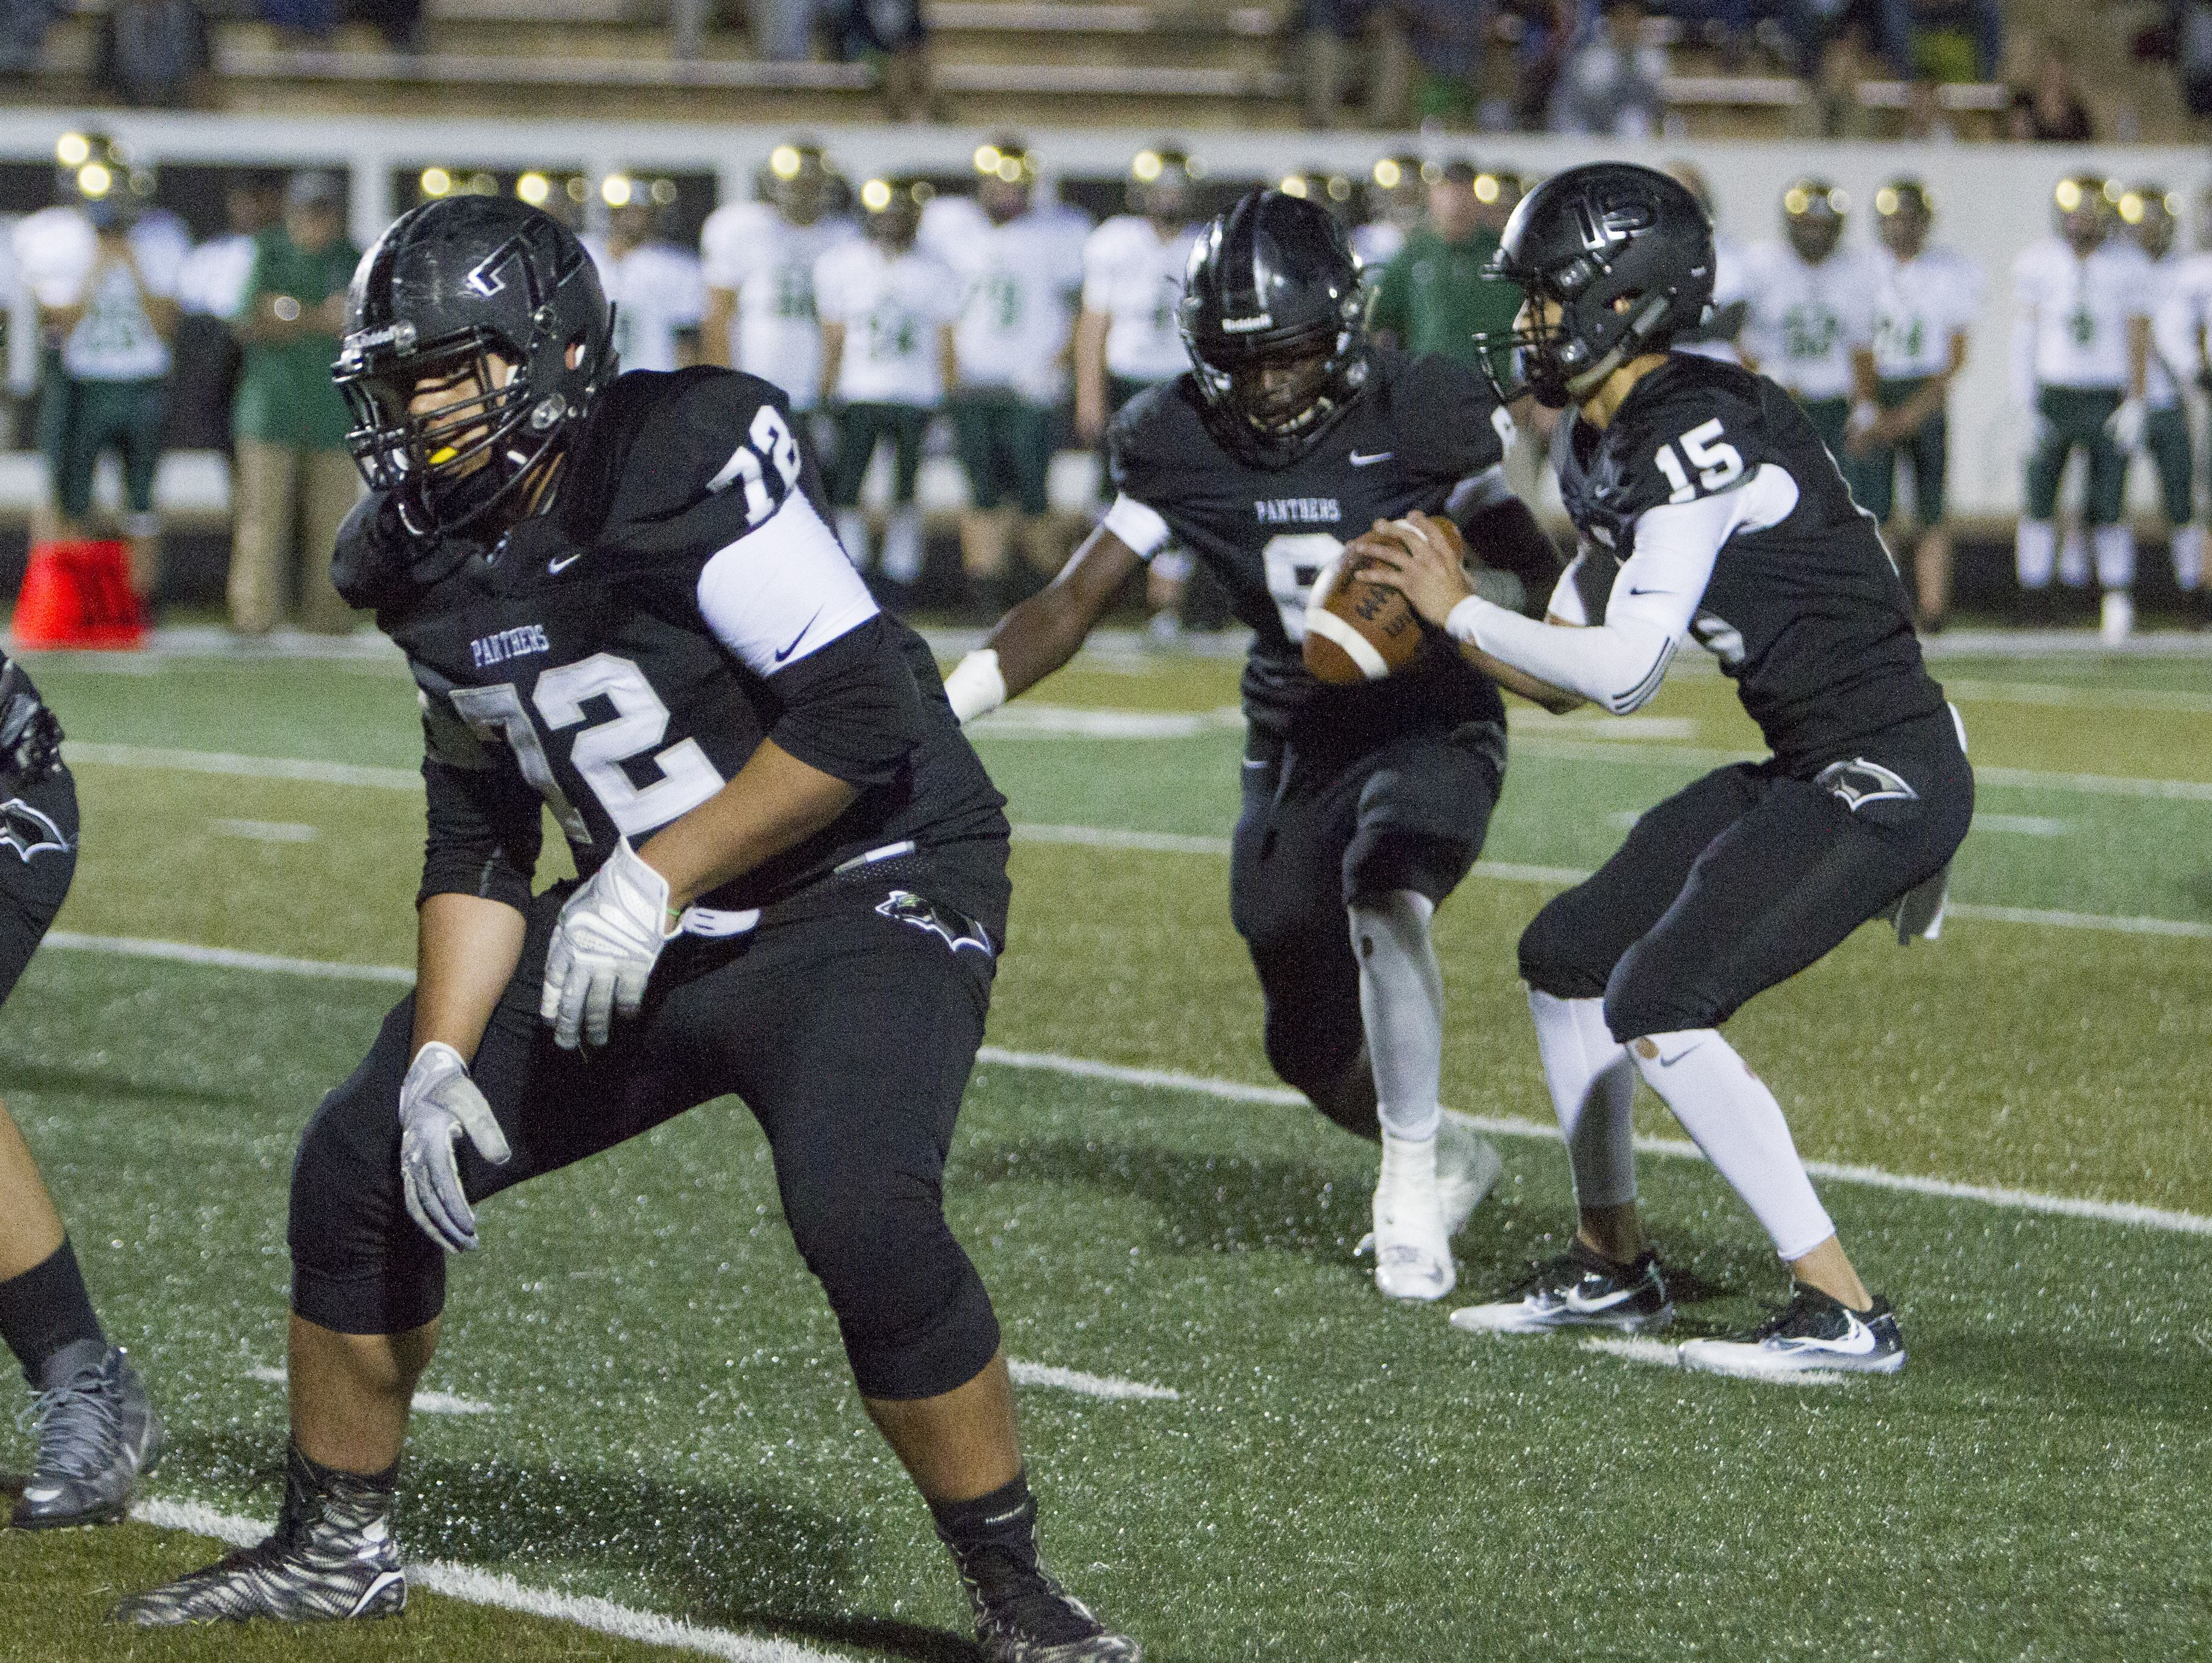 Pine View defeats the Warriors 13-7 Friday, Sept. 23, 2016.